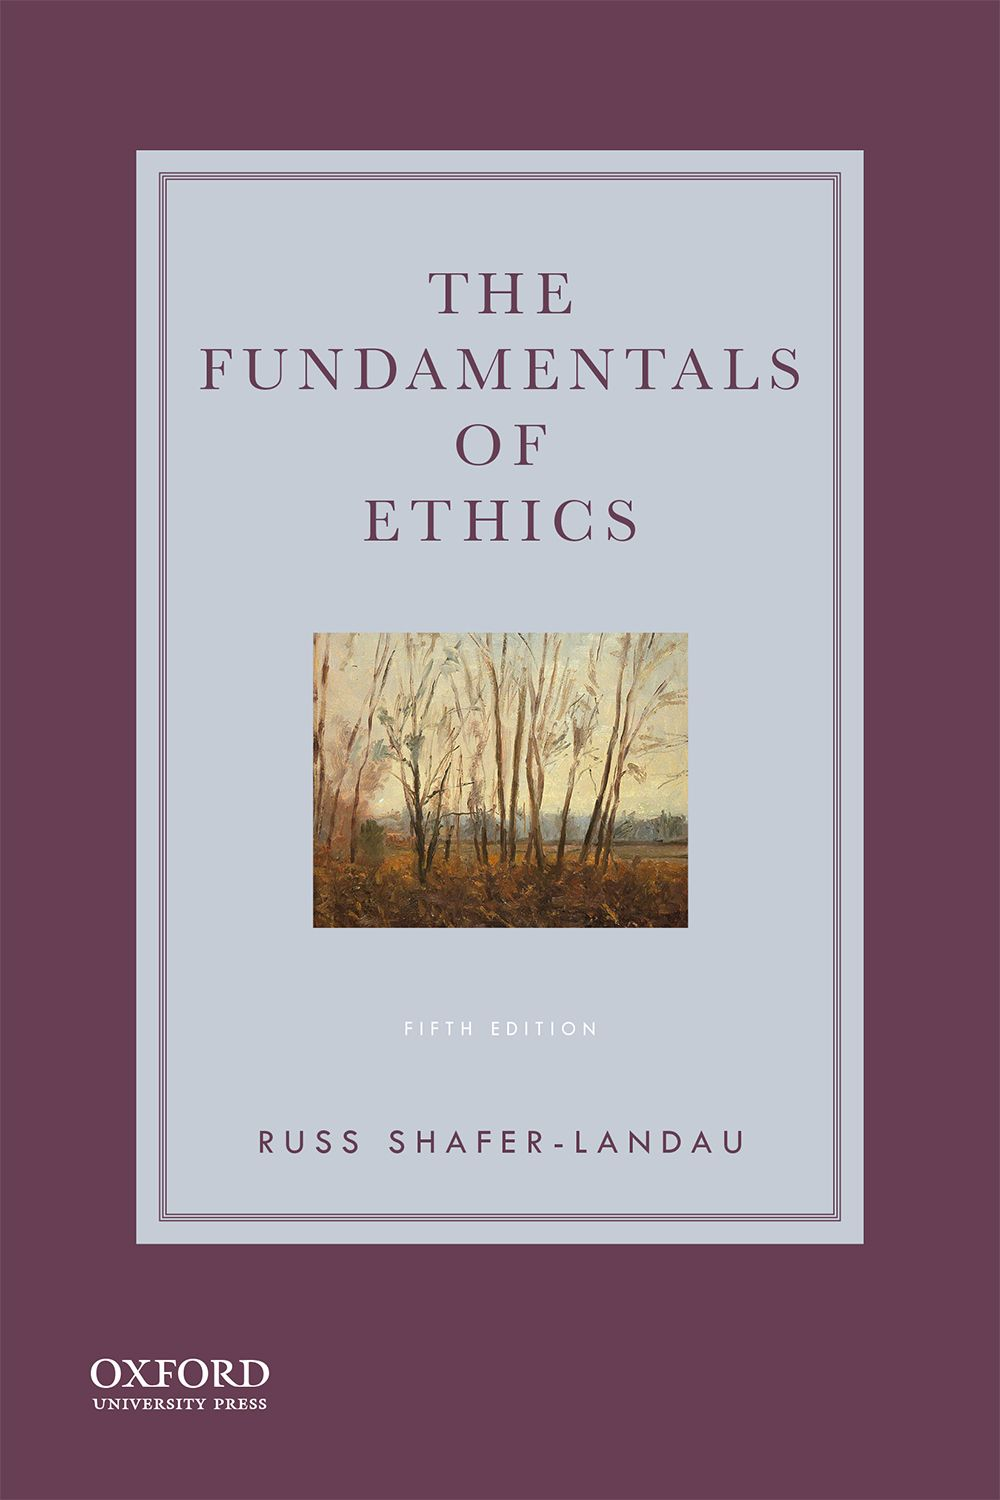 The Fundamentals of Ethics, Fifth Edition